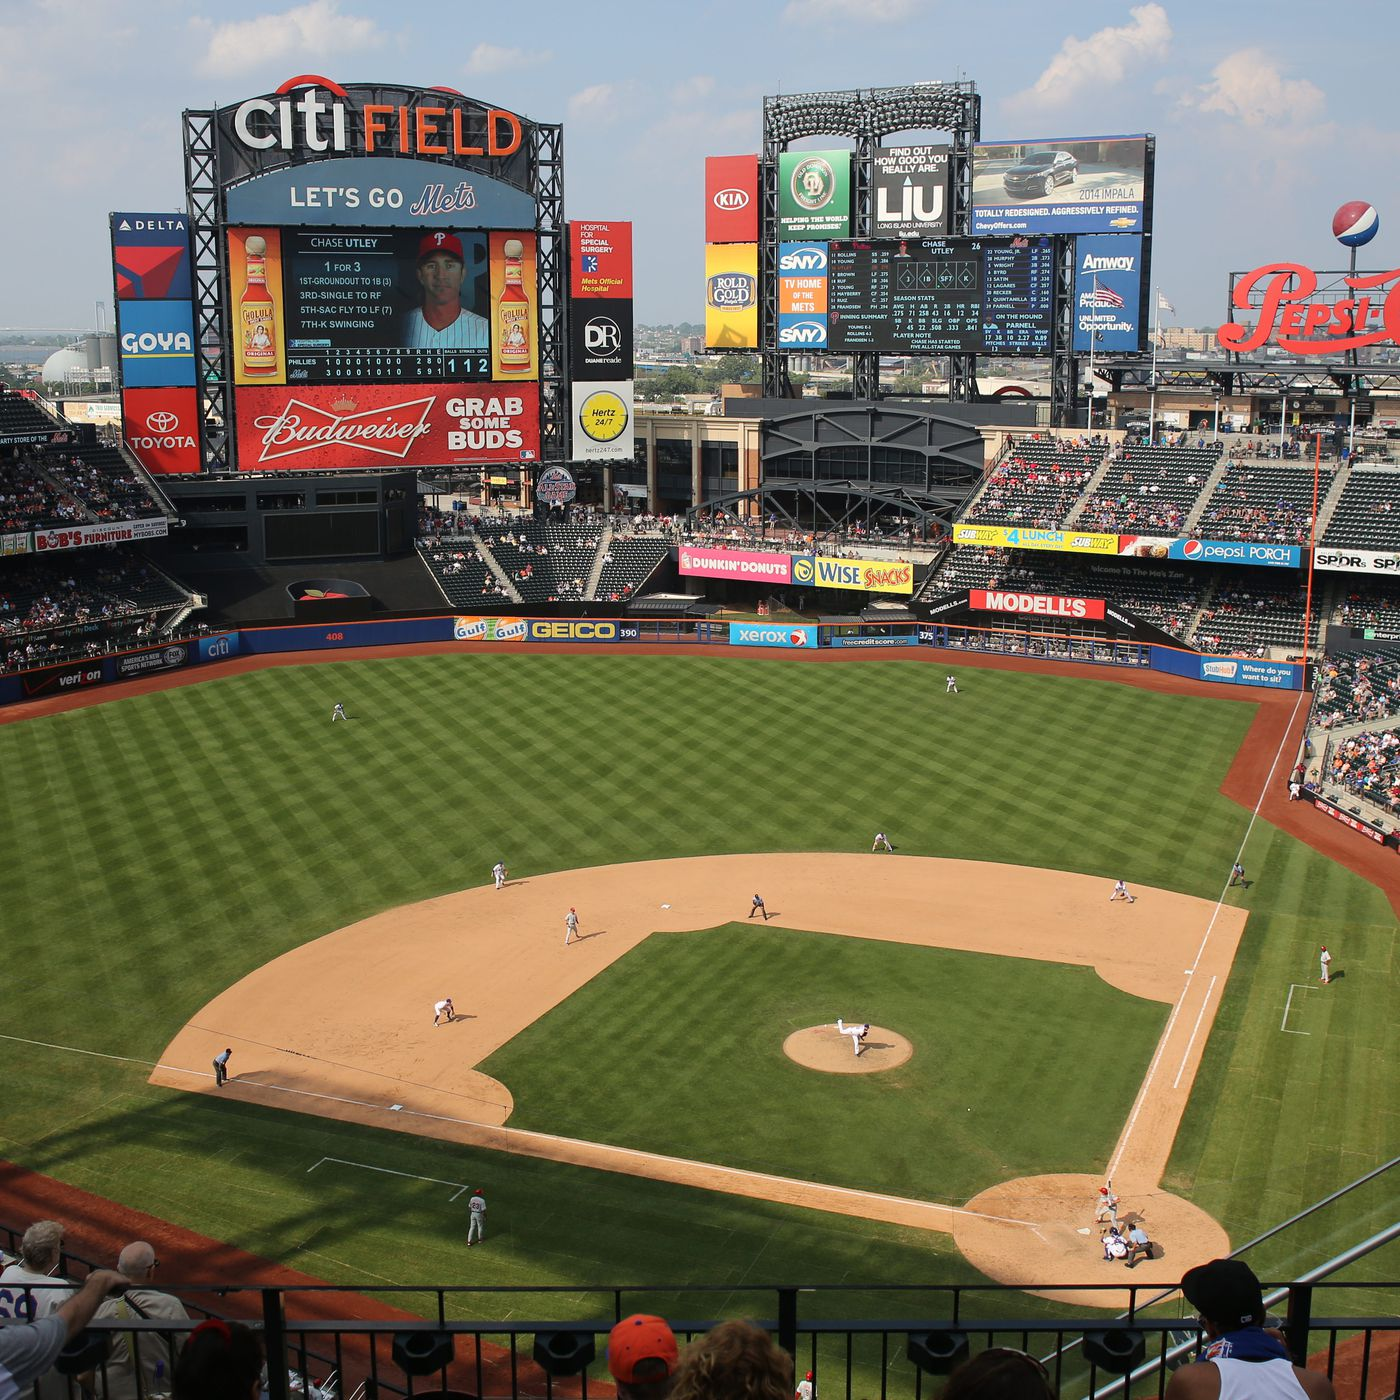 a5f1a46f9a5 Citi Field  The ultimate guide to the New York Mets ballpark - Curbed NY